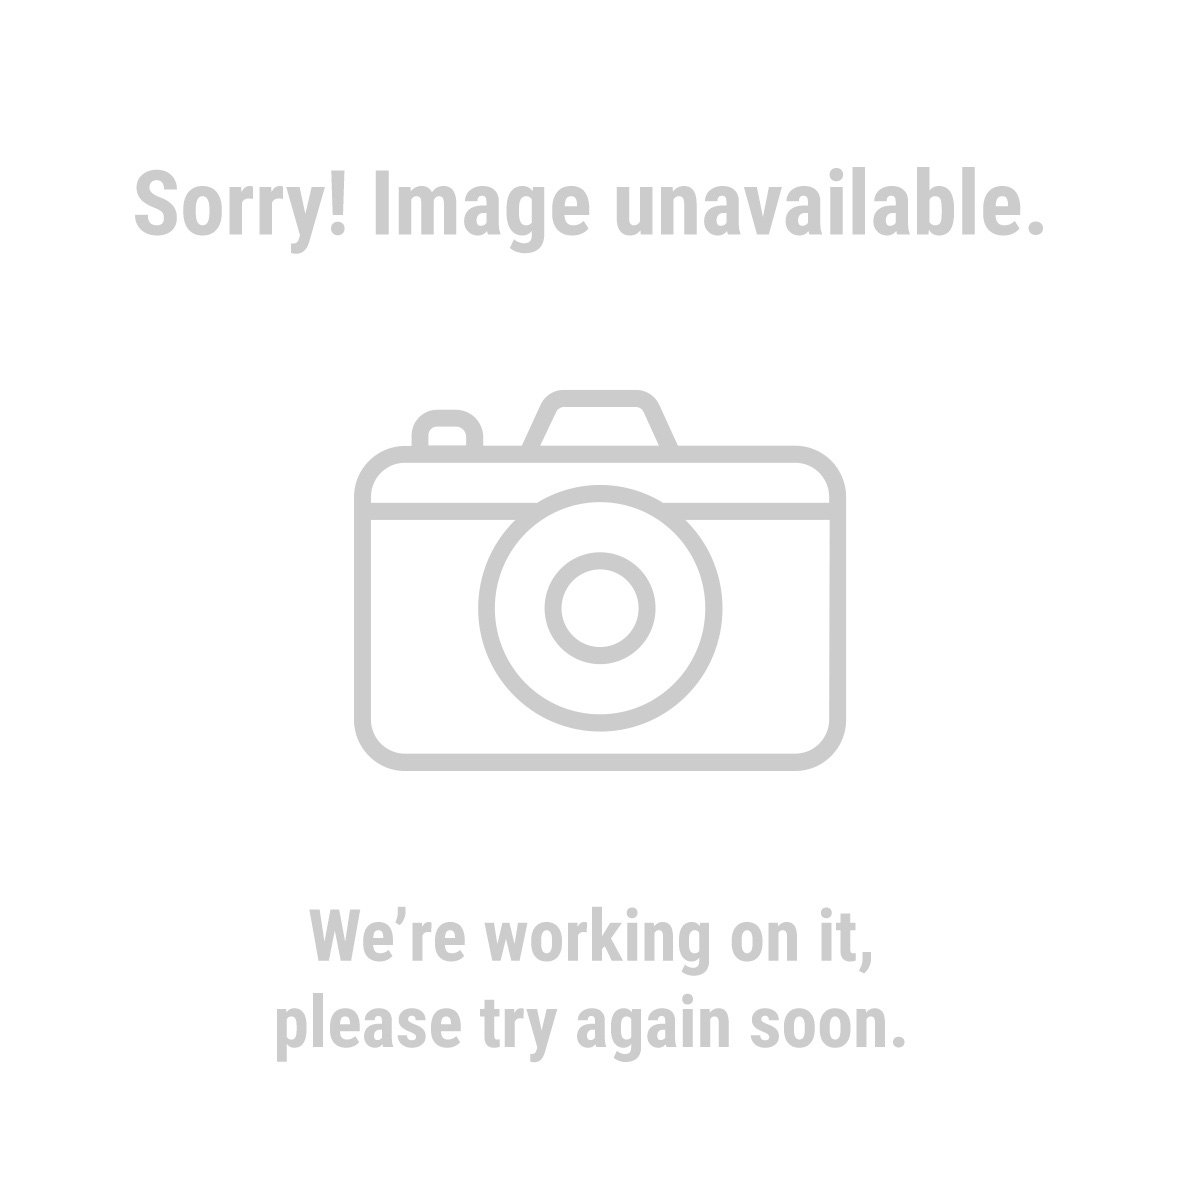 Pittsburgh® 35187 8 Piece Star Bit Socket Set